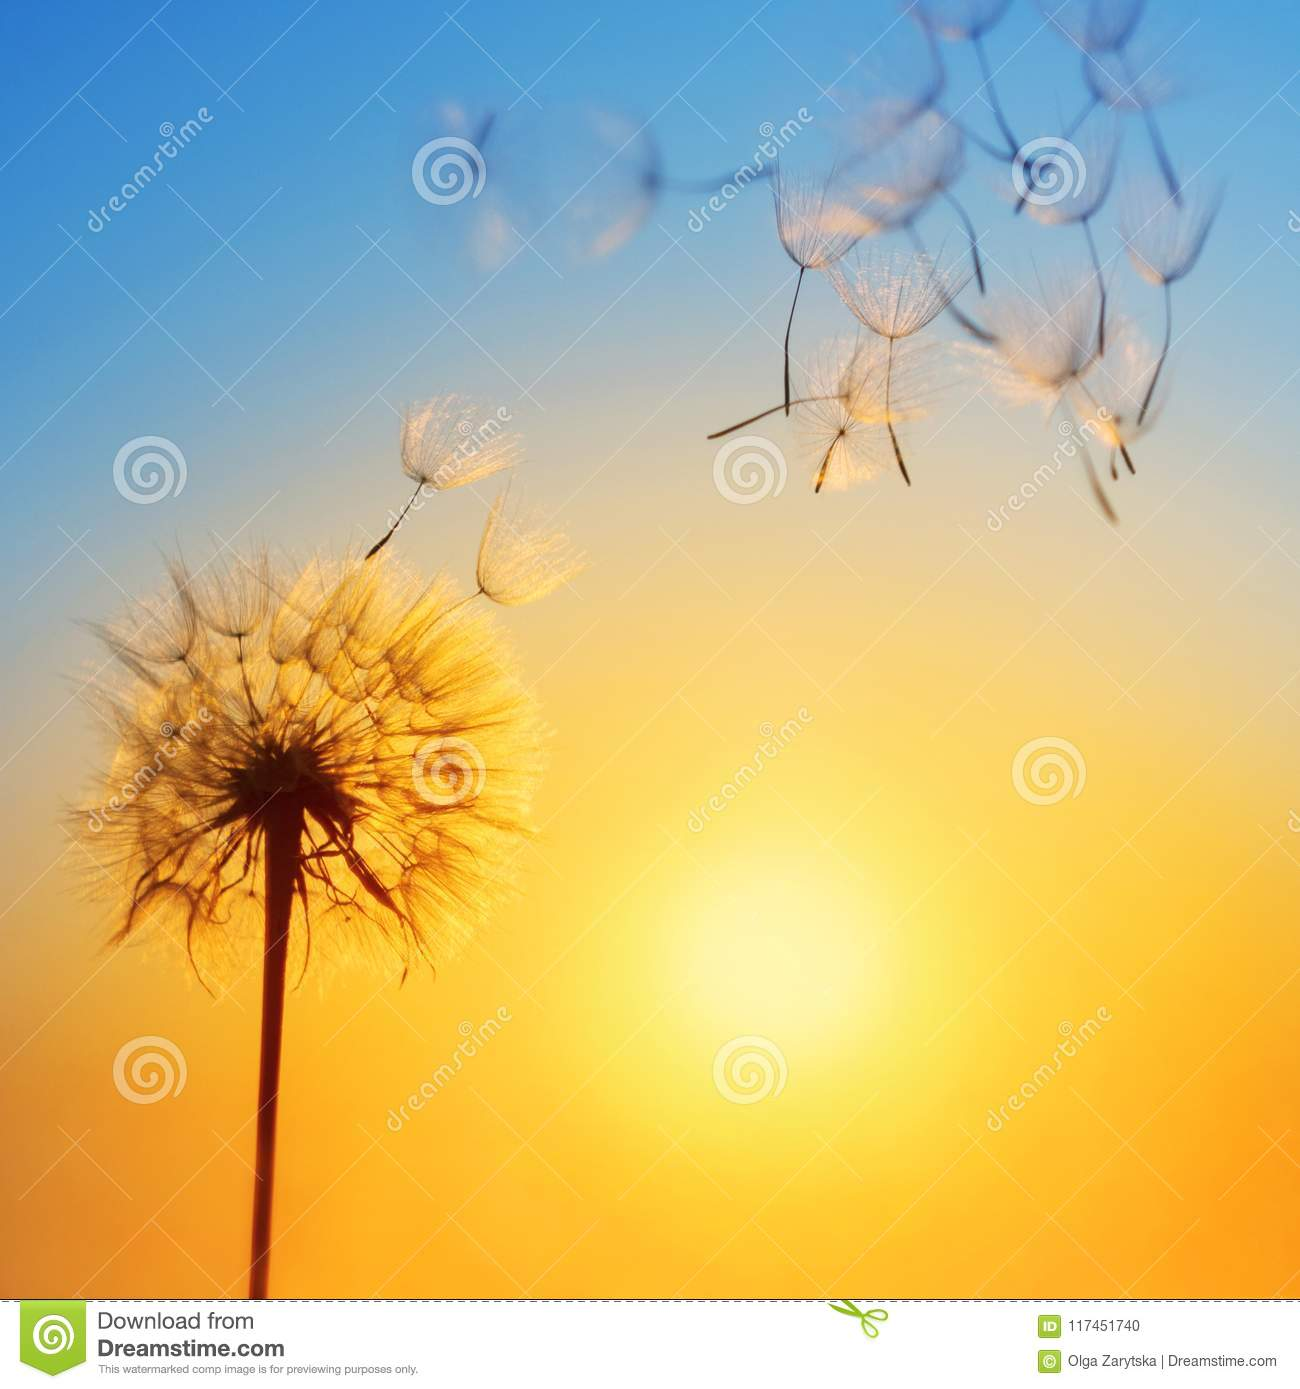 Silhouette of dandelion against the backdrop of the setting sun.